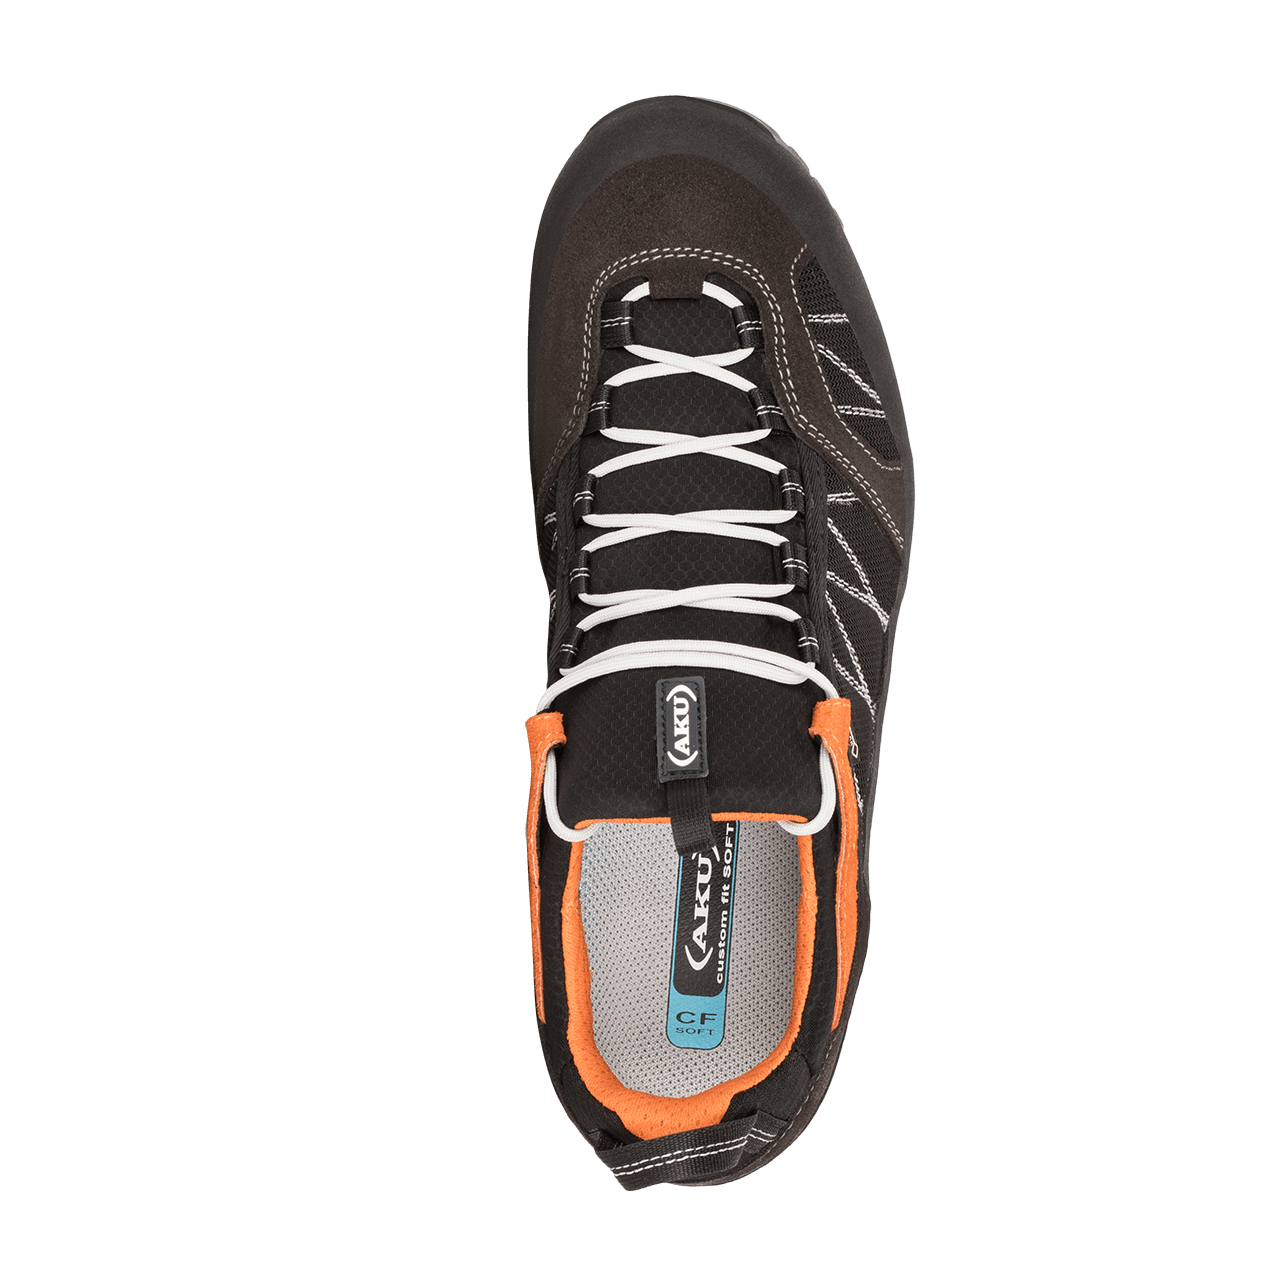 Aku Tengu Low GTX - Trailblazer Outdoors, Pickering